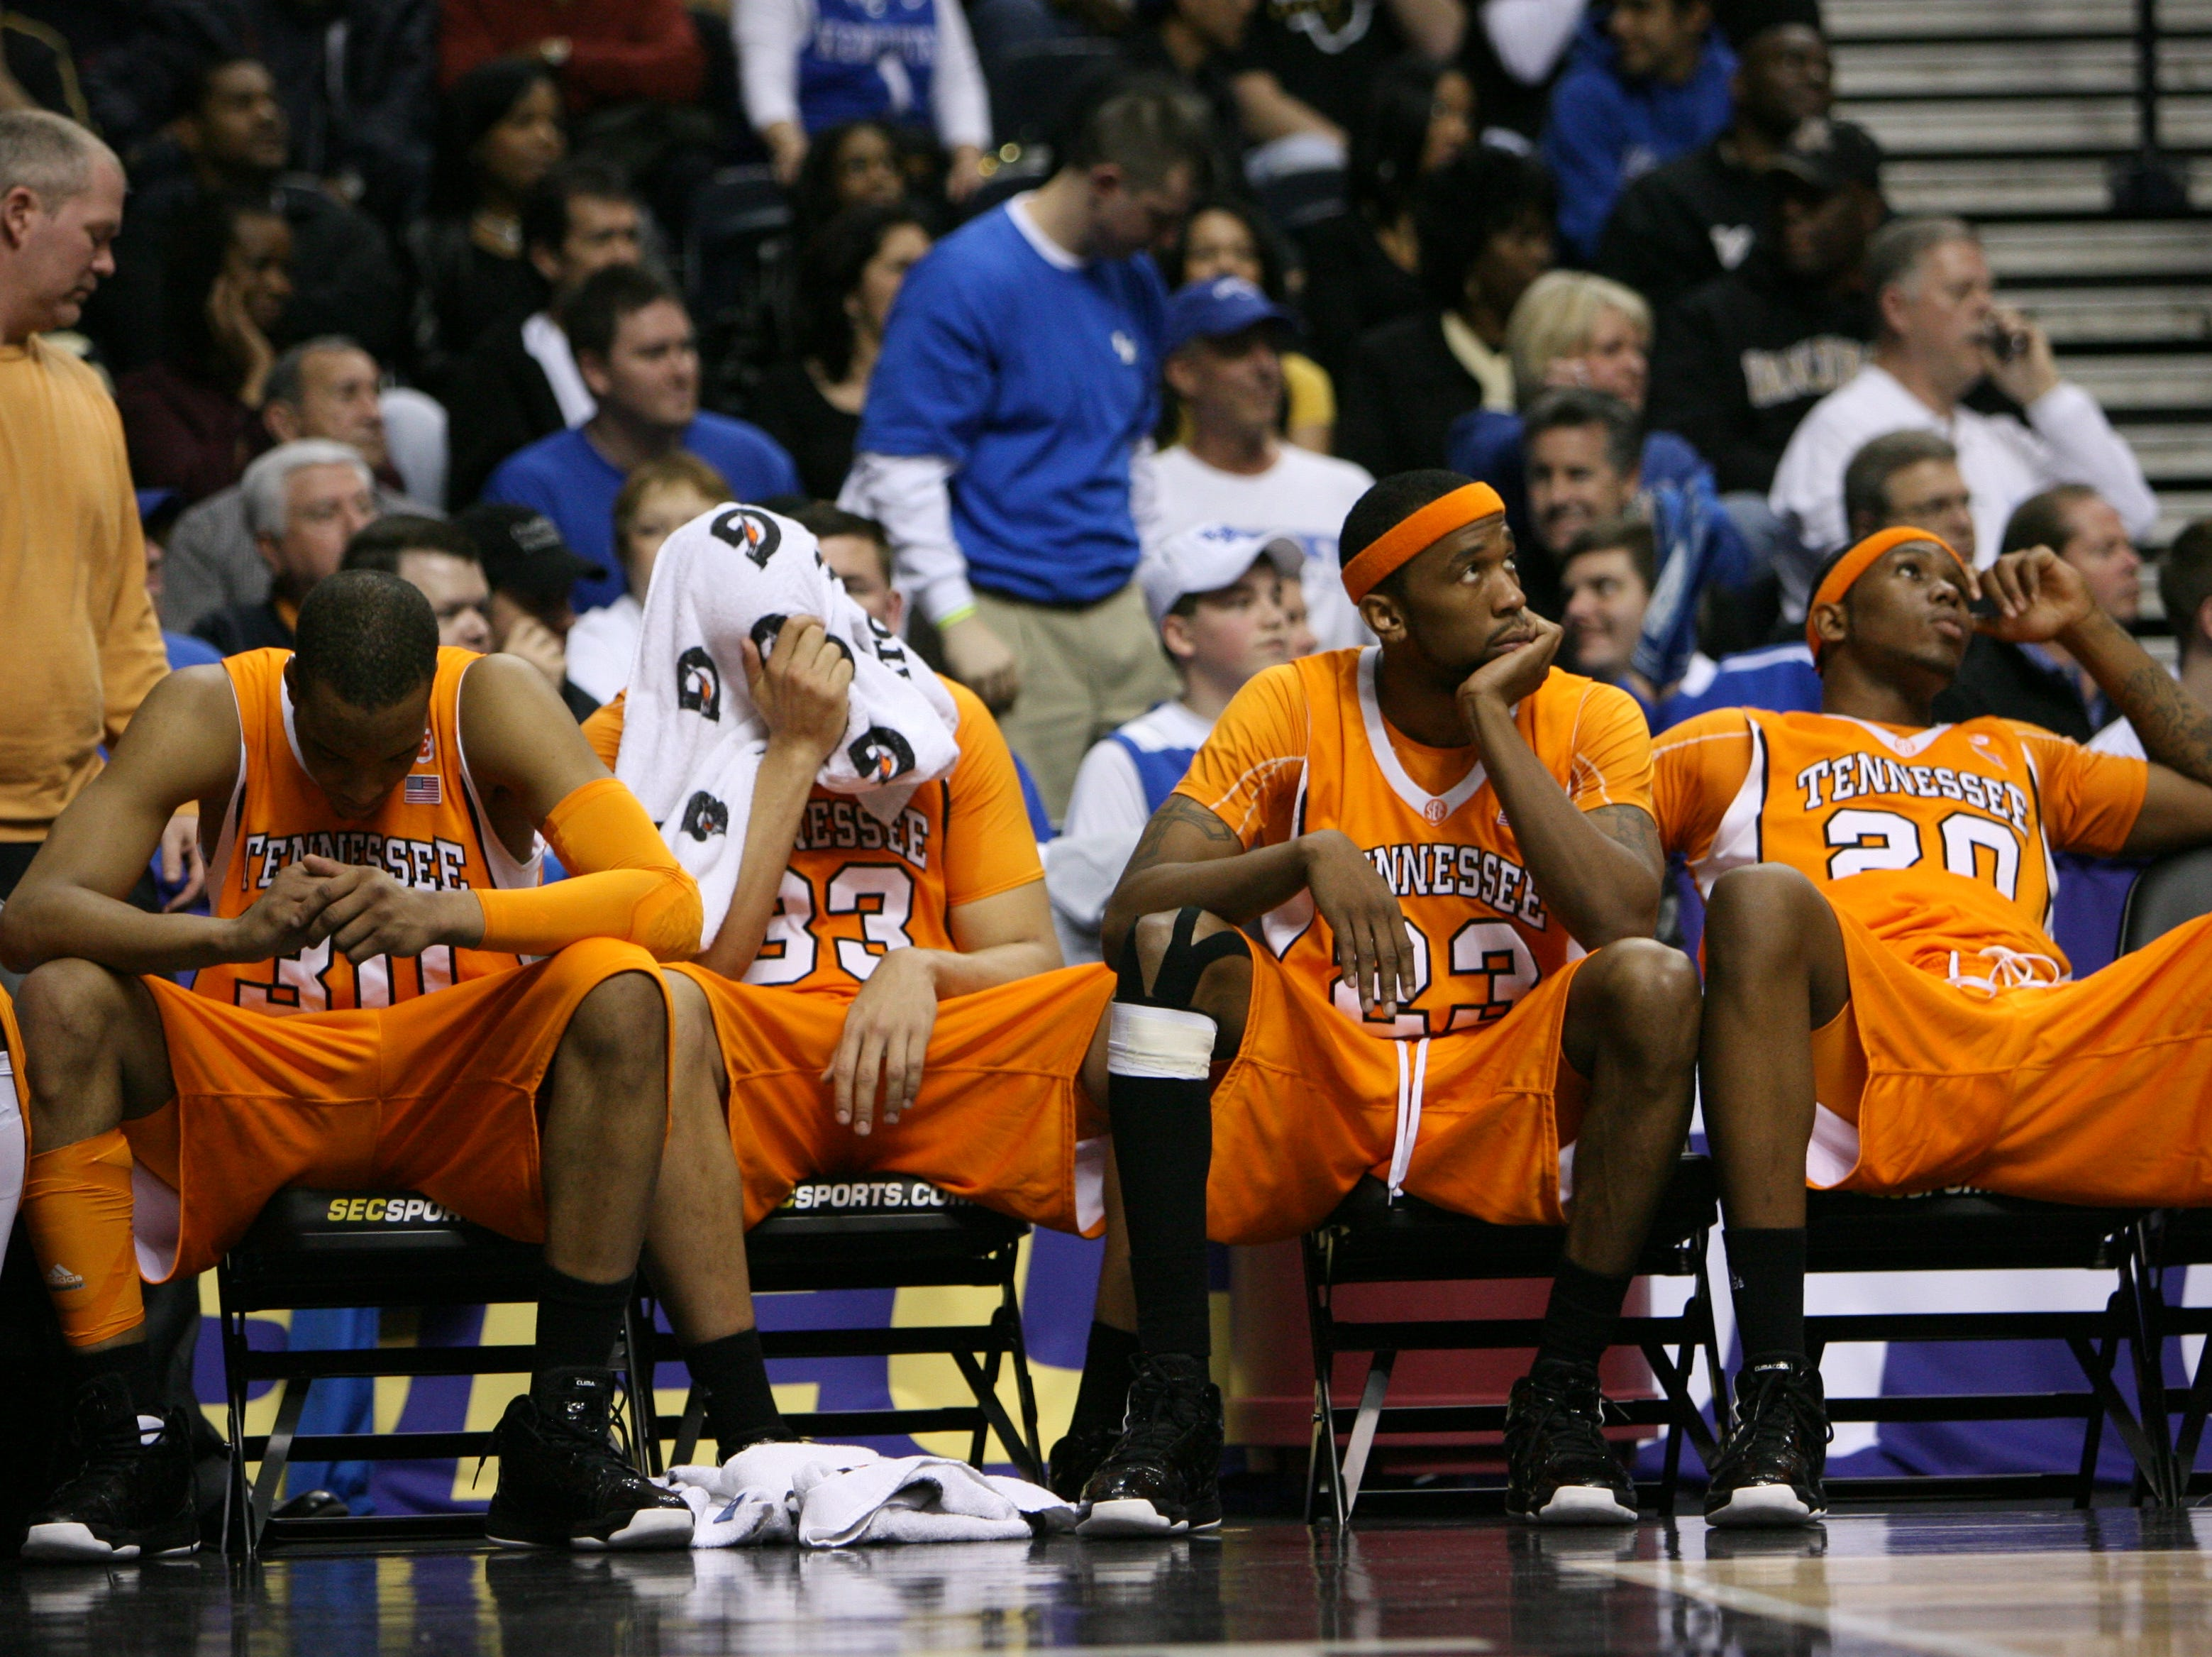 Tennessee's J.P. Prince, Brian Williams, Cameron Tatum and Kenny Hall, left to right, show their disappointment during the final seconds of the game against Kentucky at the SEC Men's Basketball Tournament at Bridgestone Arena in Nashville Saturday, Mar. 13, 2010.  Tennessee was defeated 74-45.